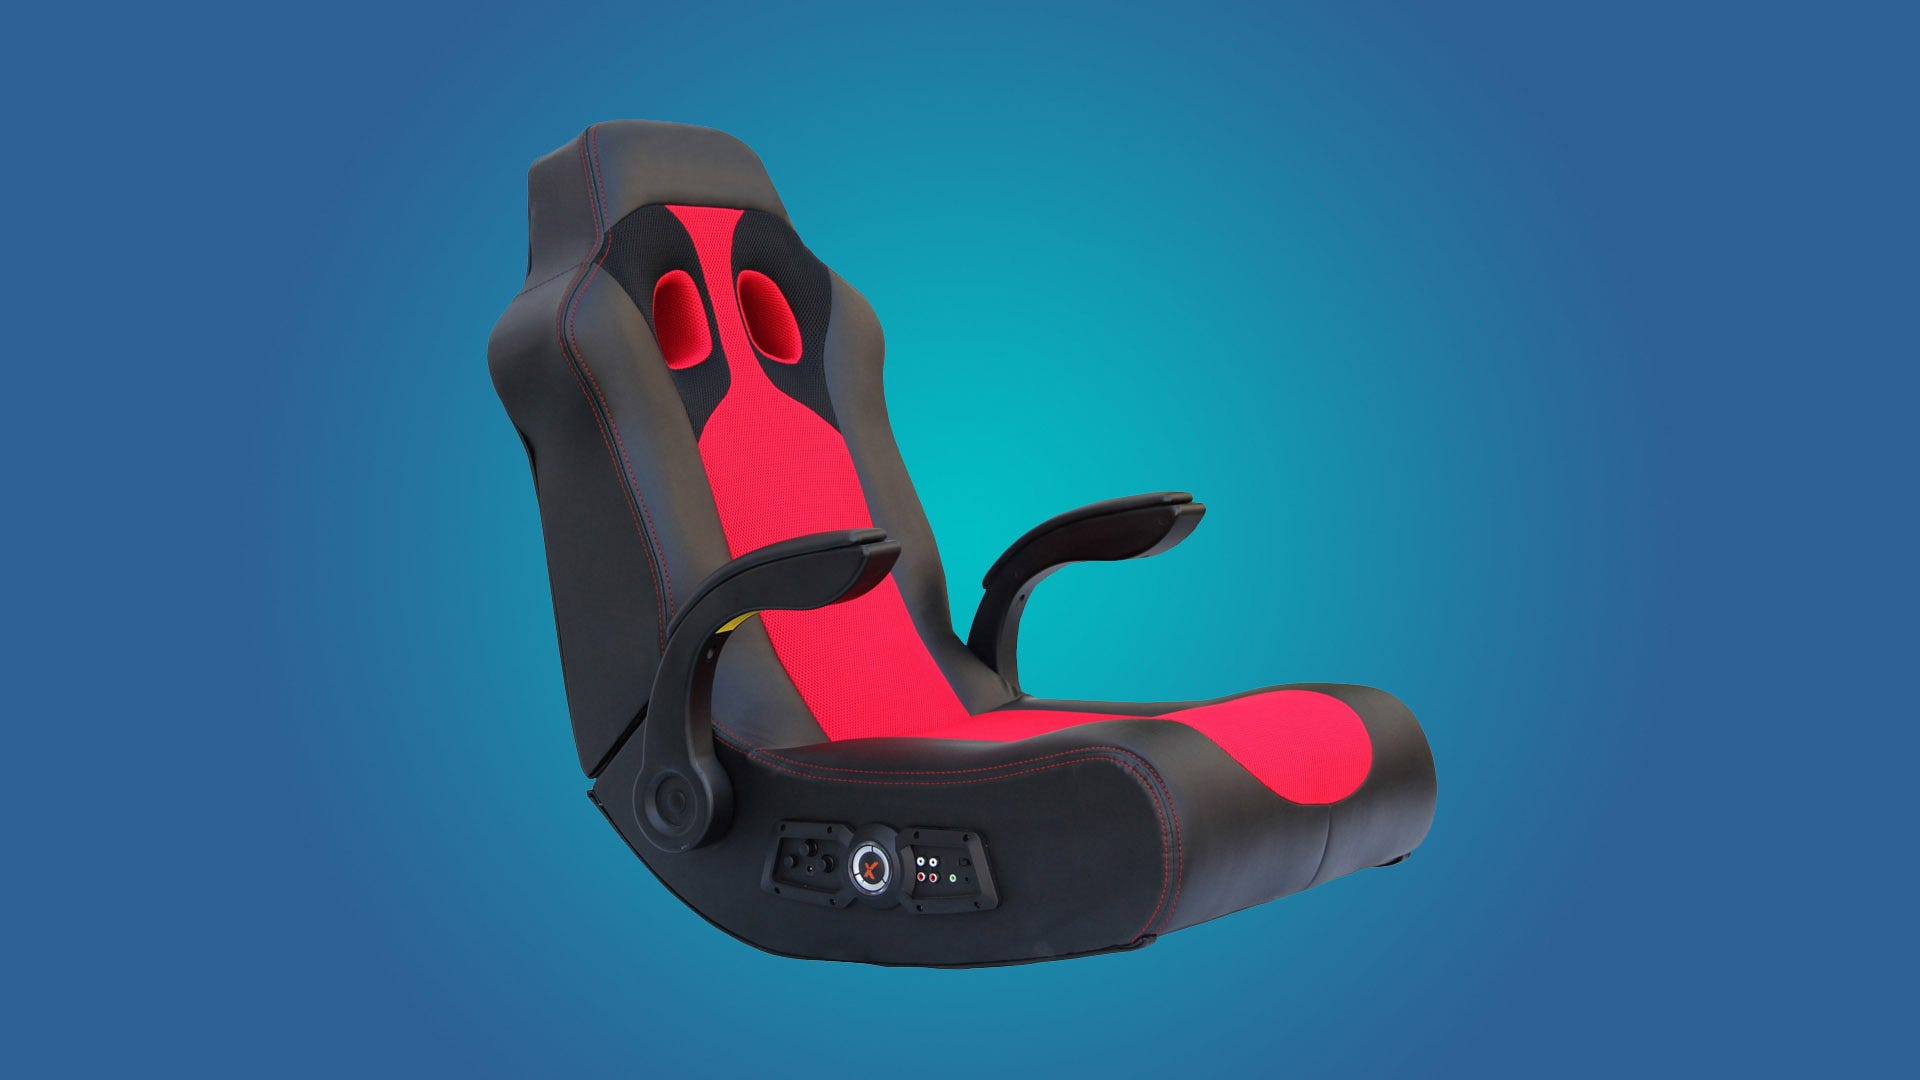 If Youu0027re Looking For A Cross Between The Easy Comfort Of A Bean Bag Chair  And The Support Of Desk Chair, Gaming U201crockeru201d Chairs Are A Pretty Sweet  Hybrid.